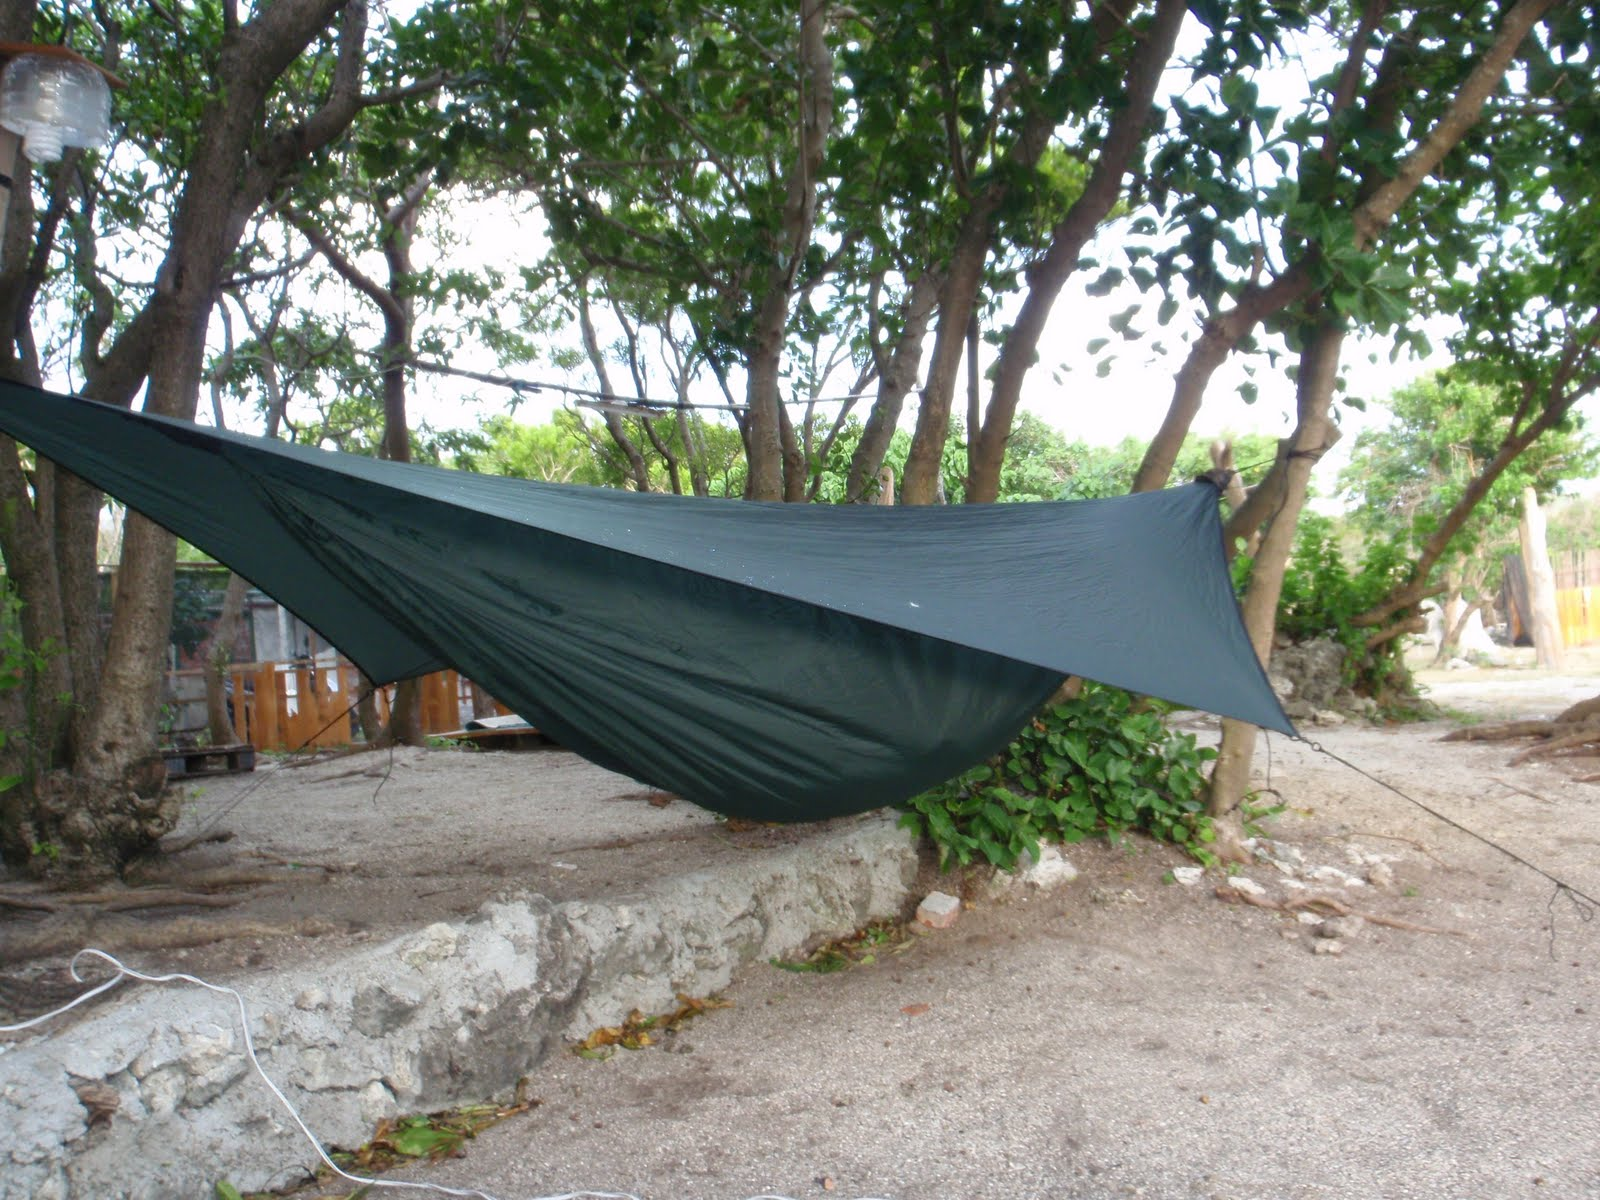 Hennessy Hammock Expedition Asym & Outdoor Gadgets: Hennessy Hammock Expedition Asym